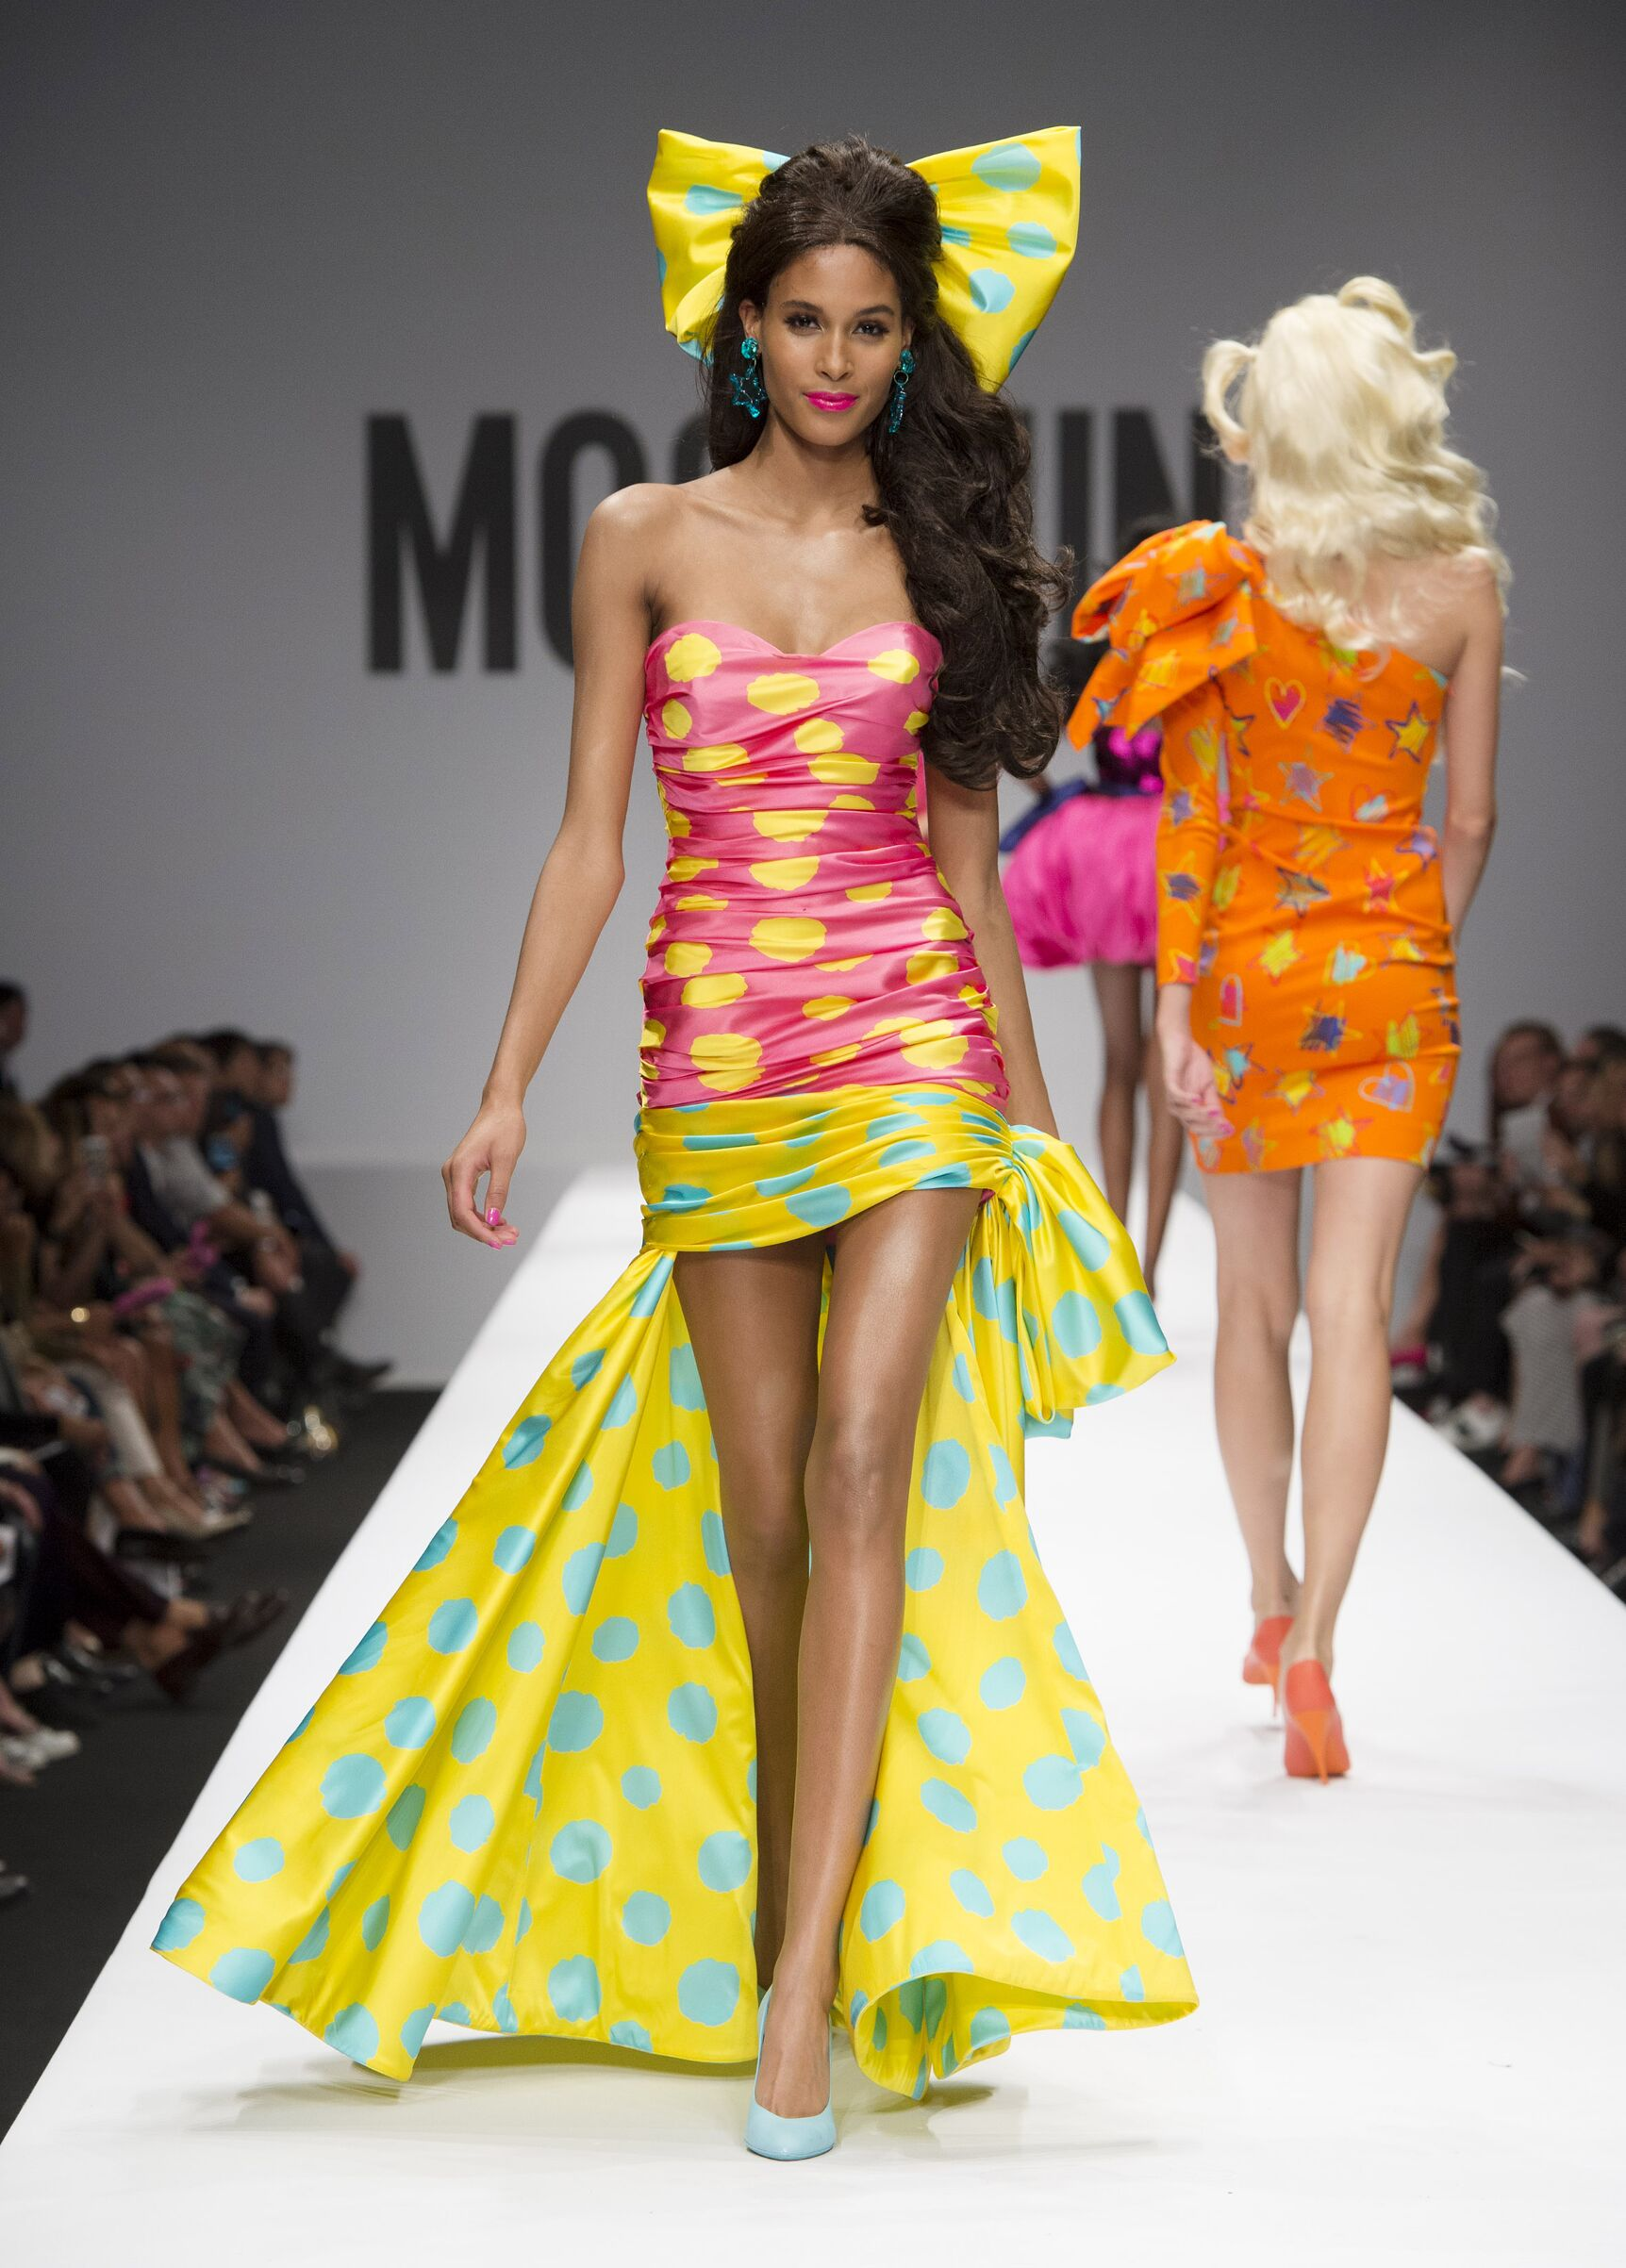 Moschino Woman Milan Fashion Week